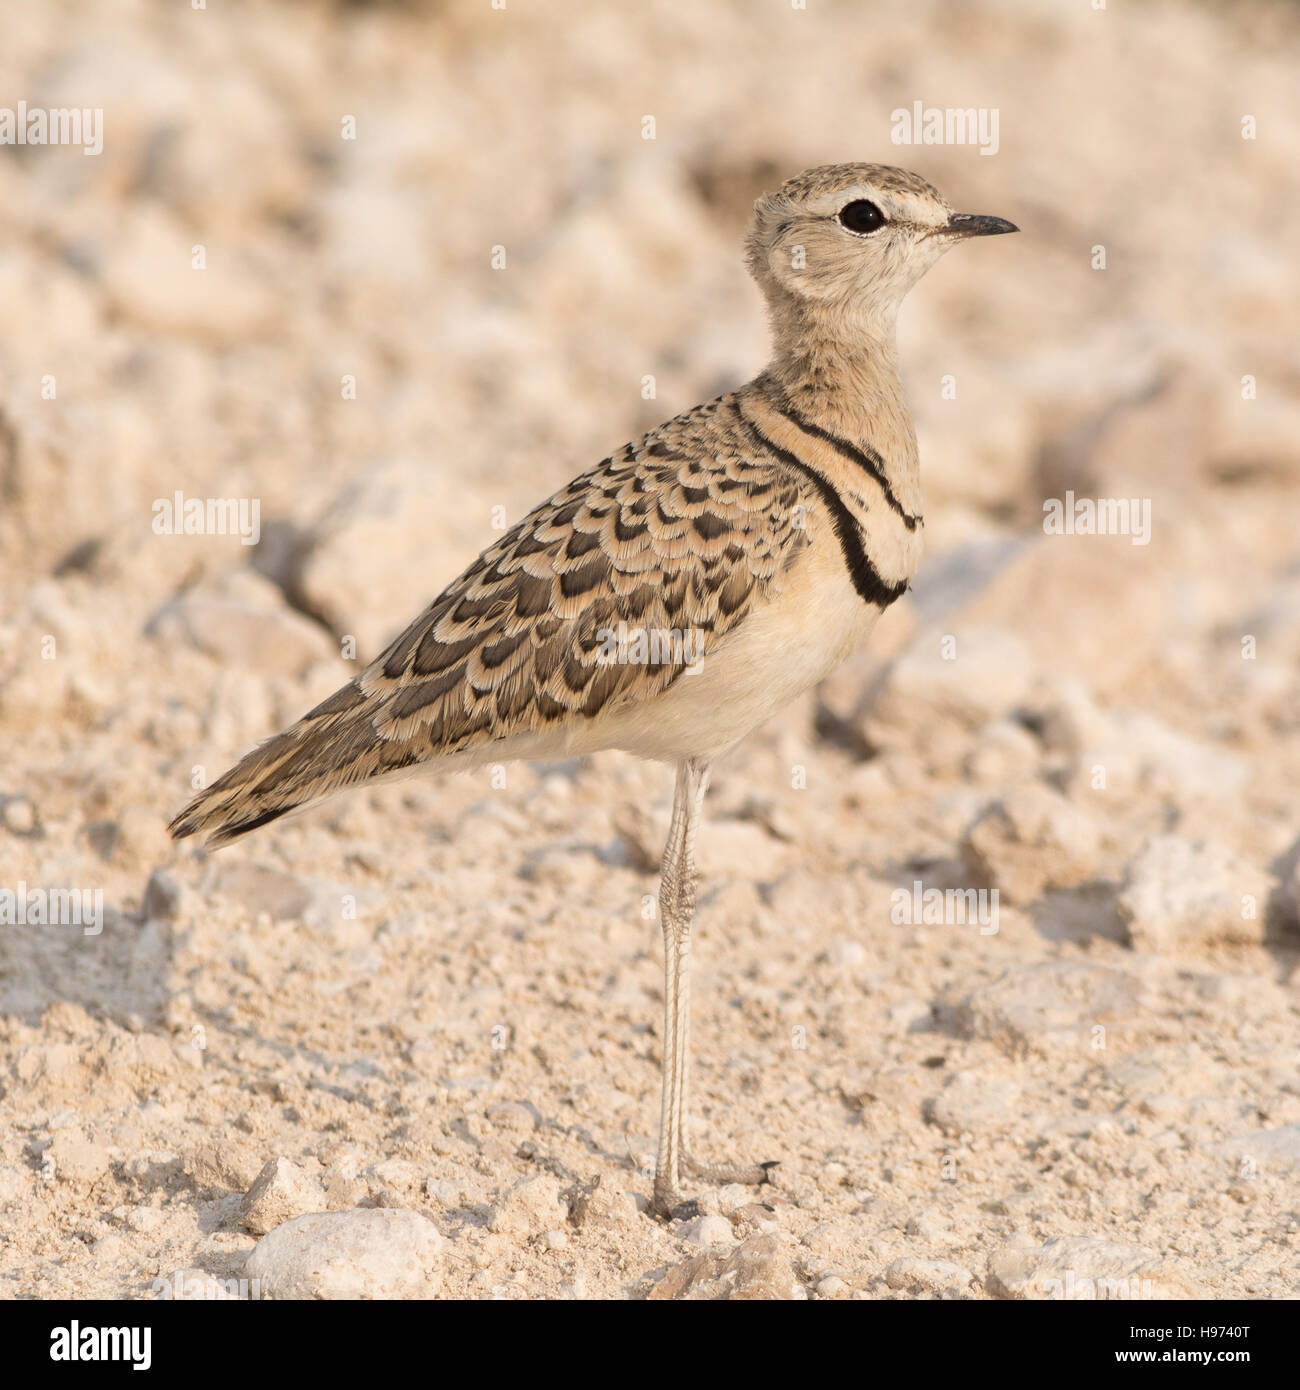 Double Banded Courser Bird standing on the ground, seen in namibia, africa. - Stock Image